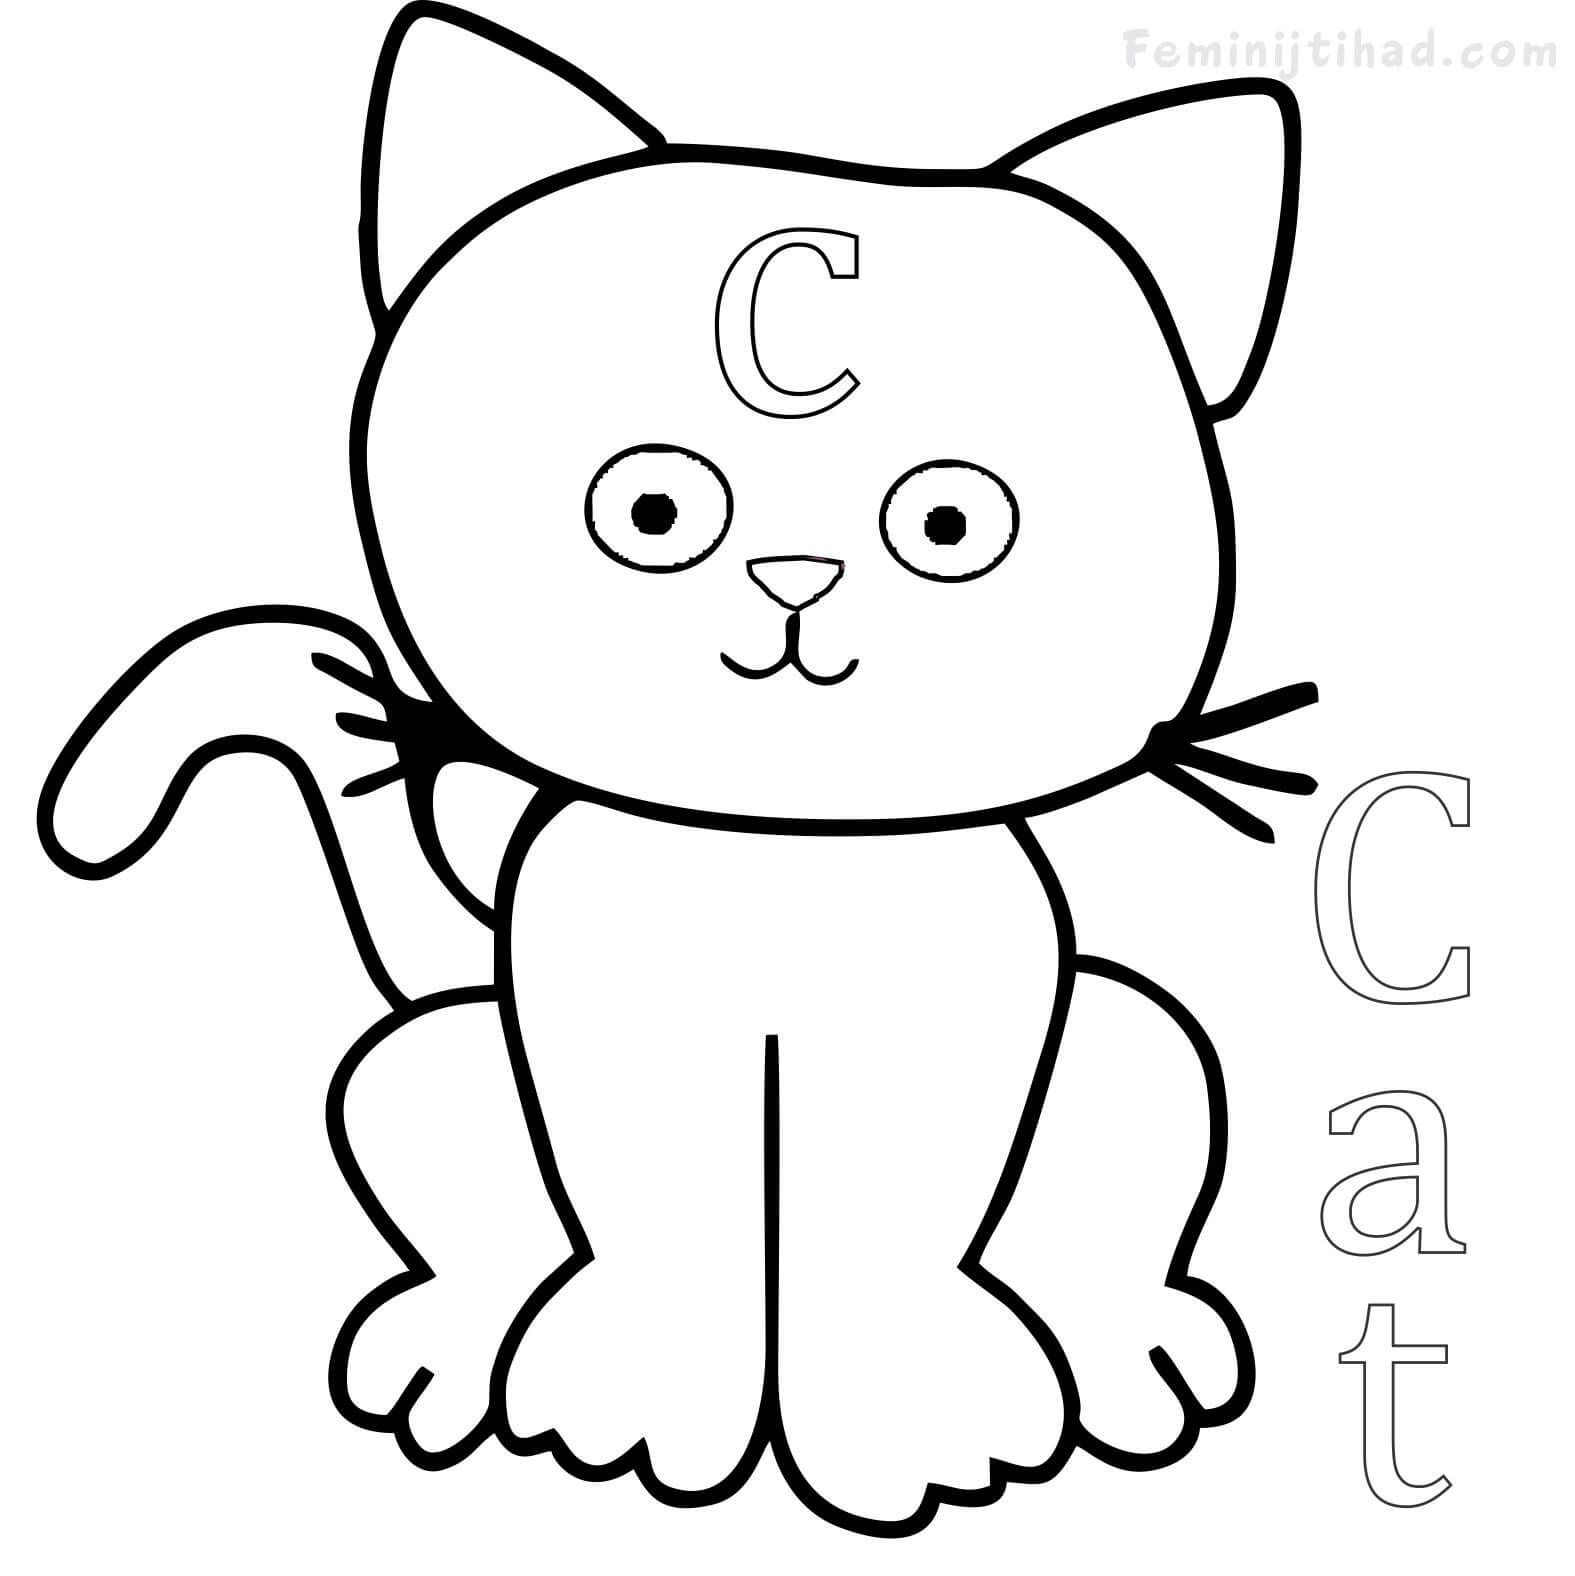 50+ Cute cat coloring pages printable information